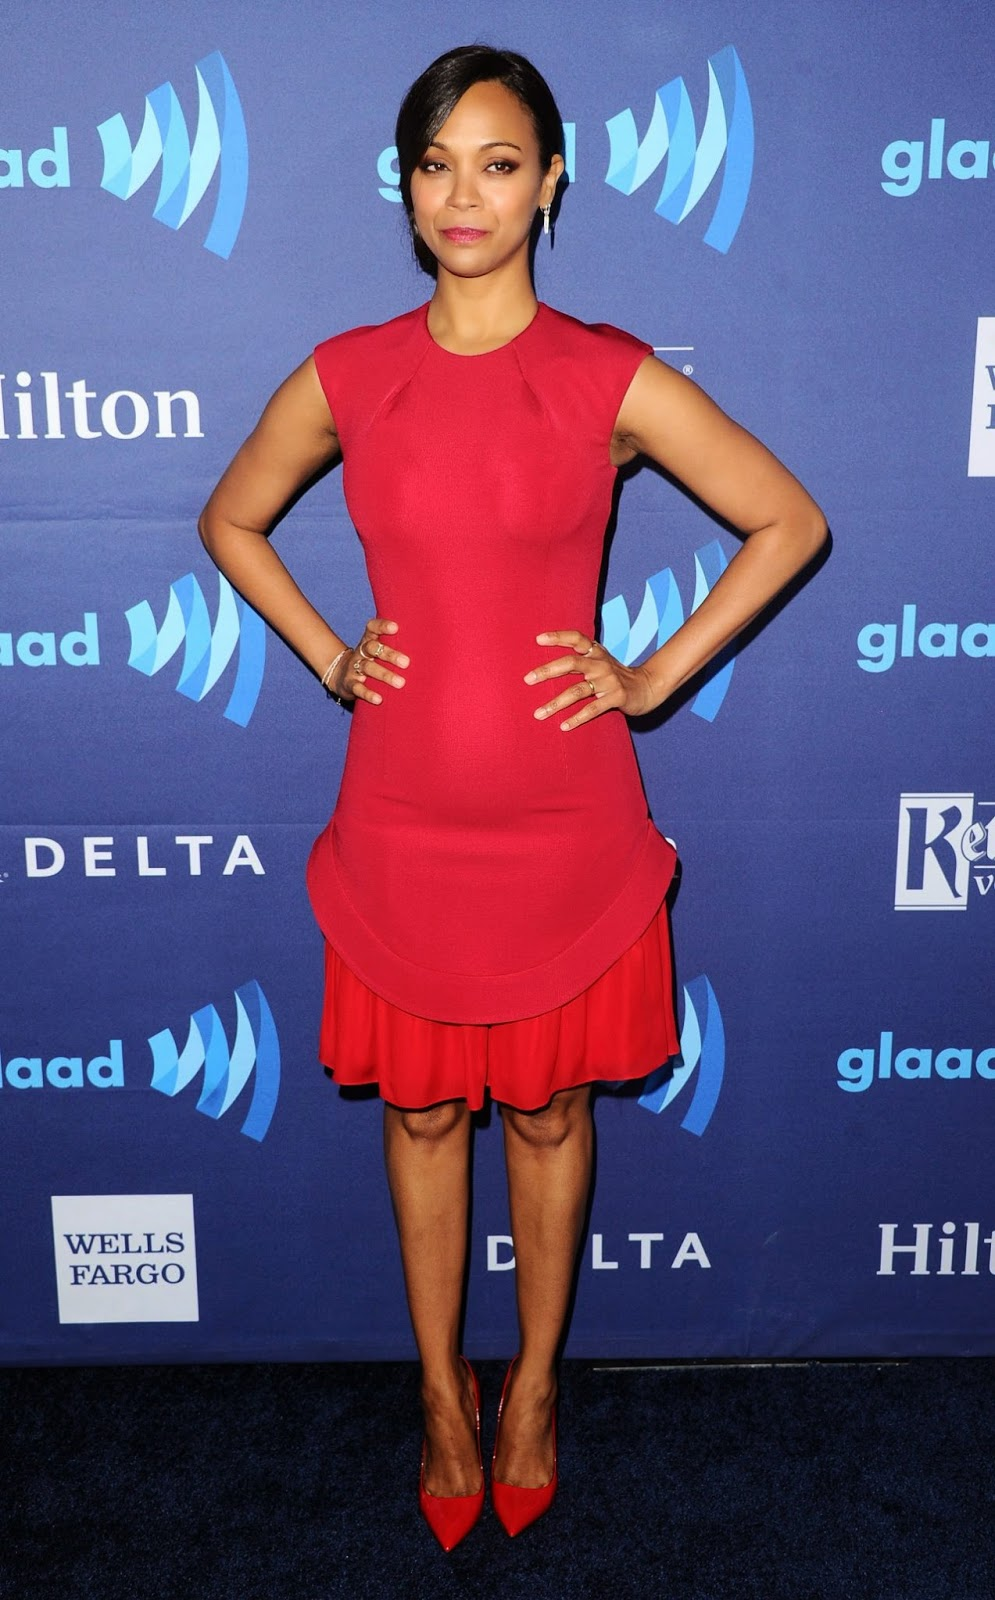 Zoe Saldana at the 2015 GLAAD Media Awards in Beverly Hills